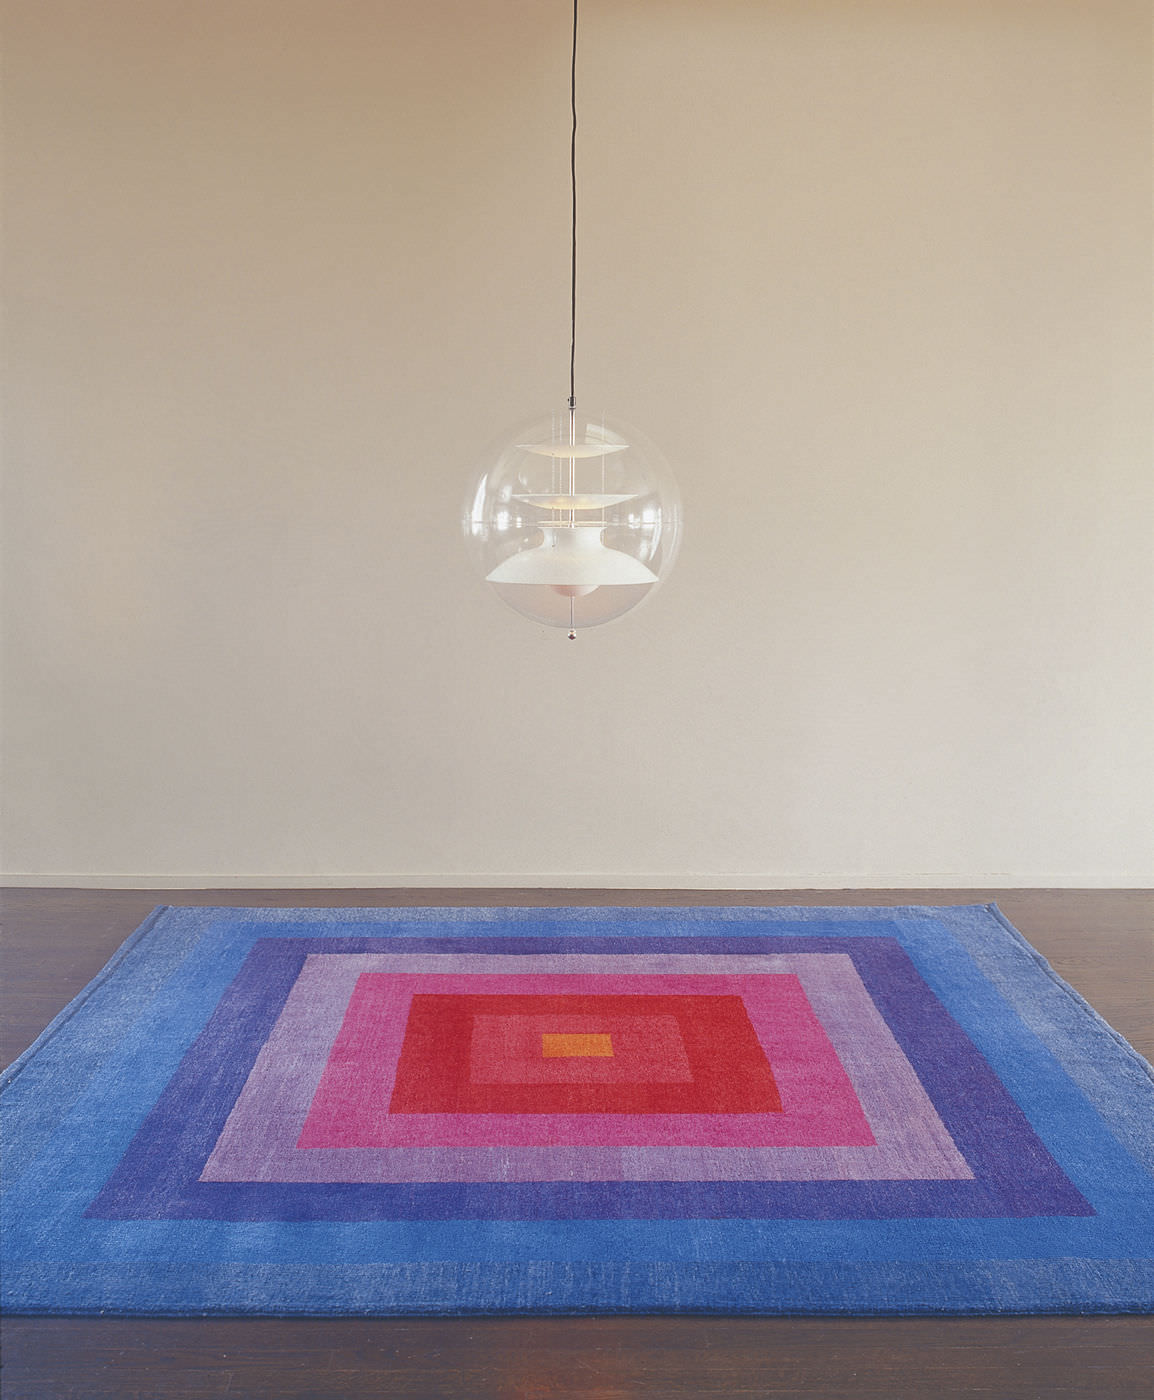 verner panton rug rare verner panton mira romantica large scale  - contemporary rug patterned wool rectangular square rug by